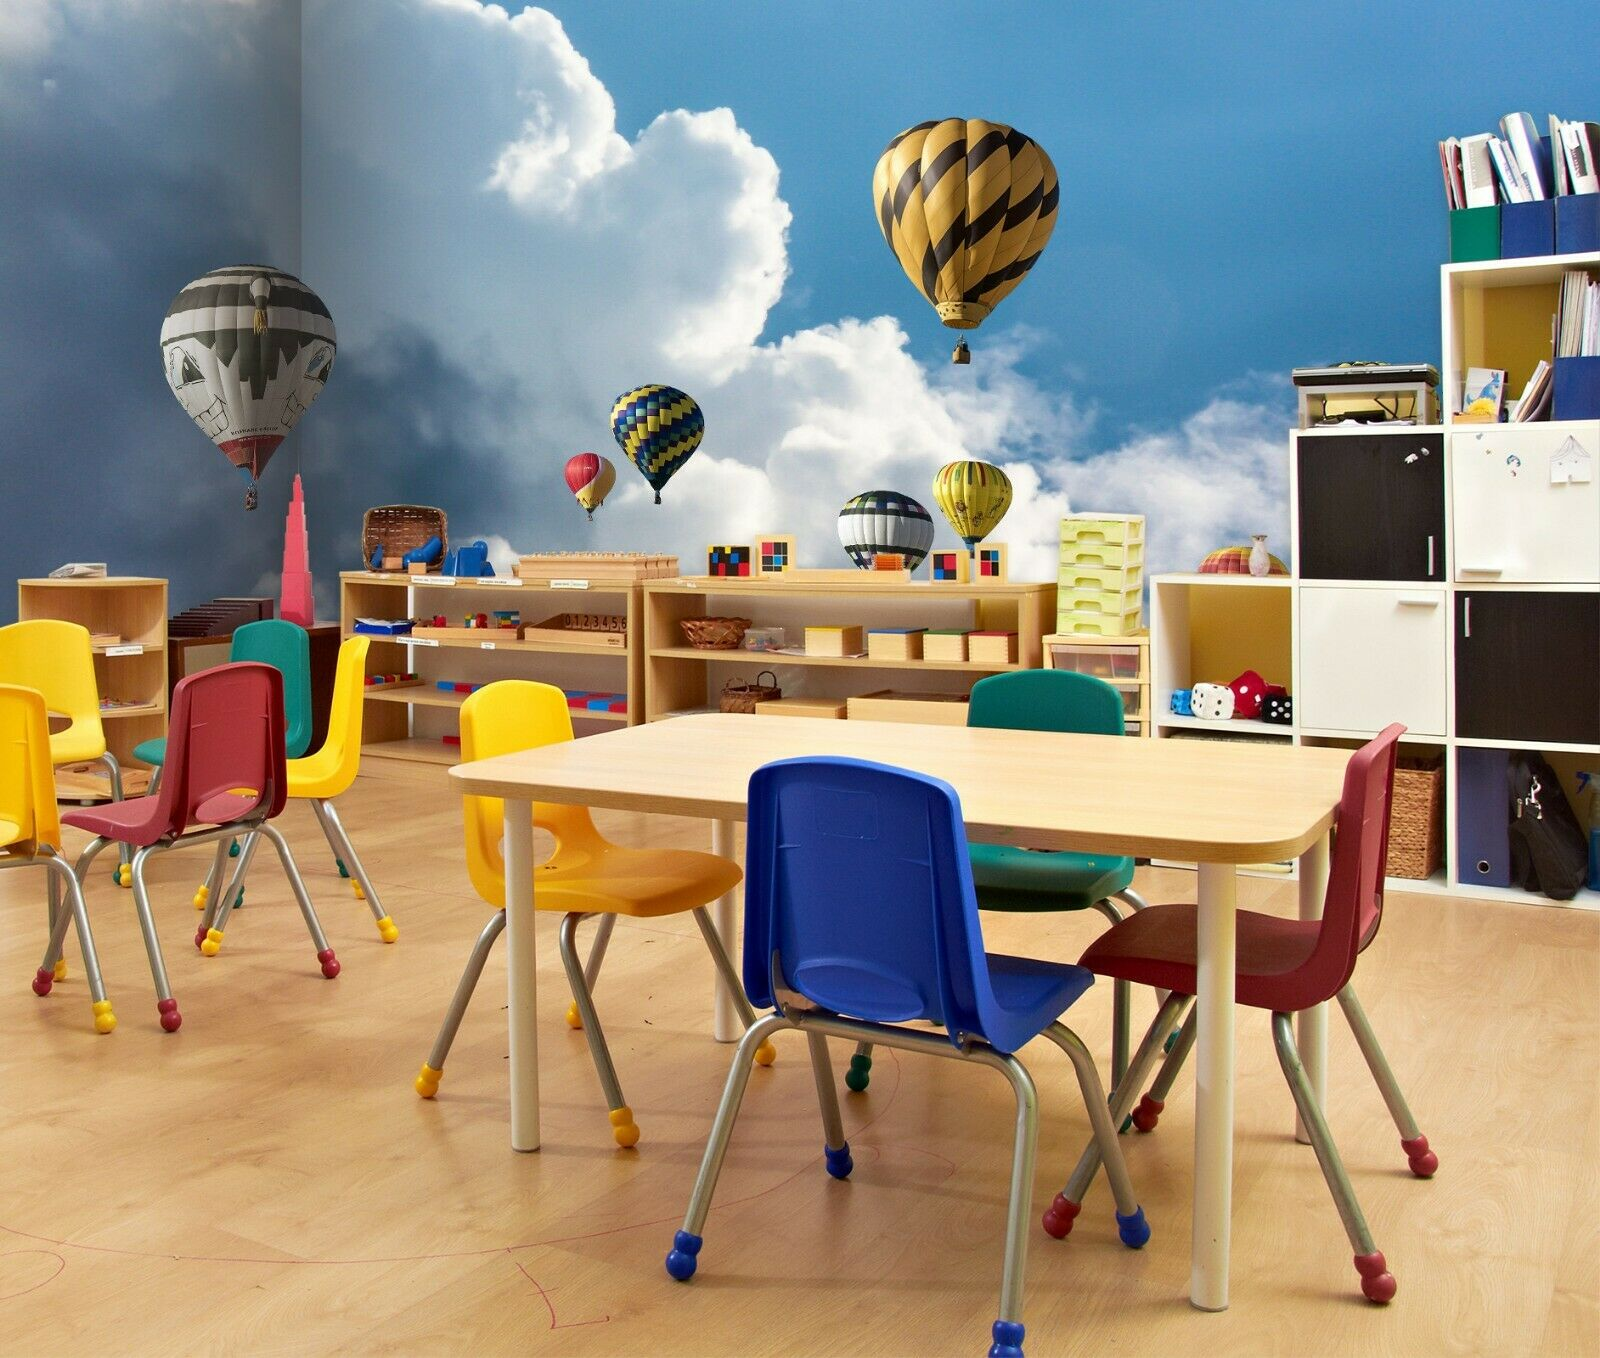 3D Hot Air Balloon N170 Business Wallpaper Wall Mural Self-adhesive Commerce Amy